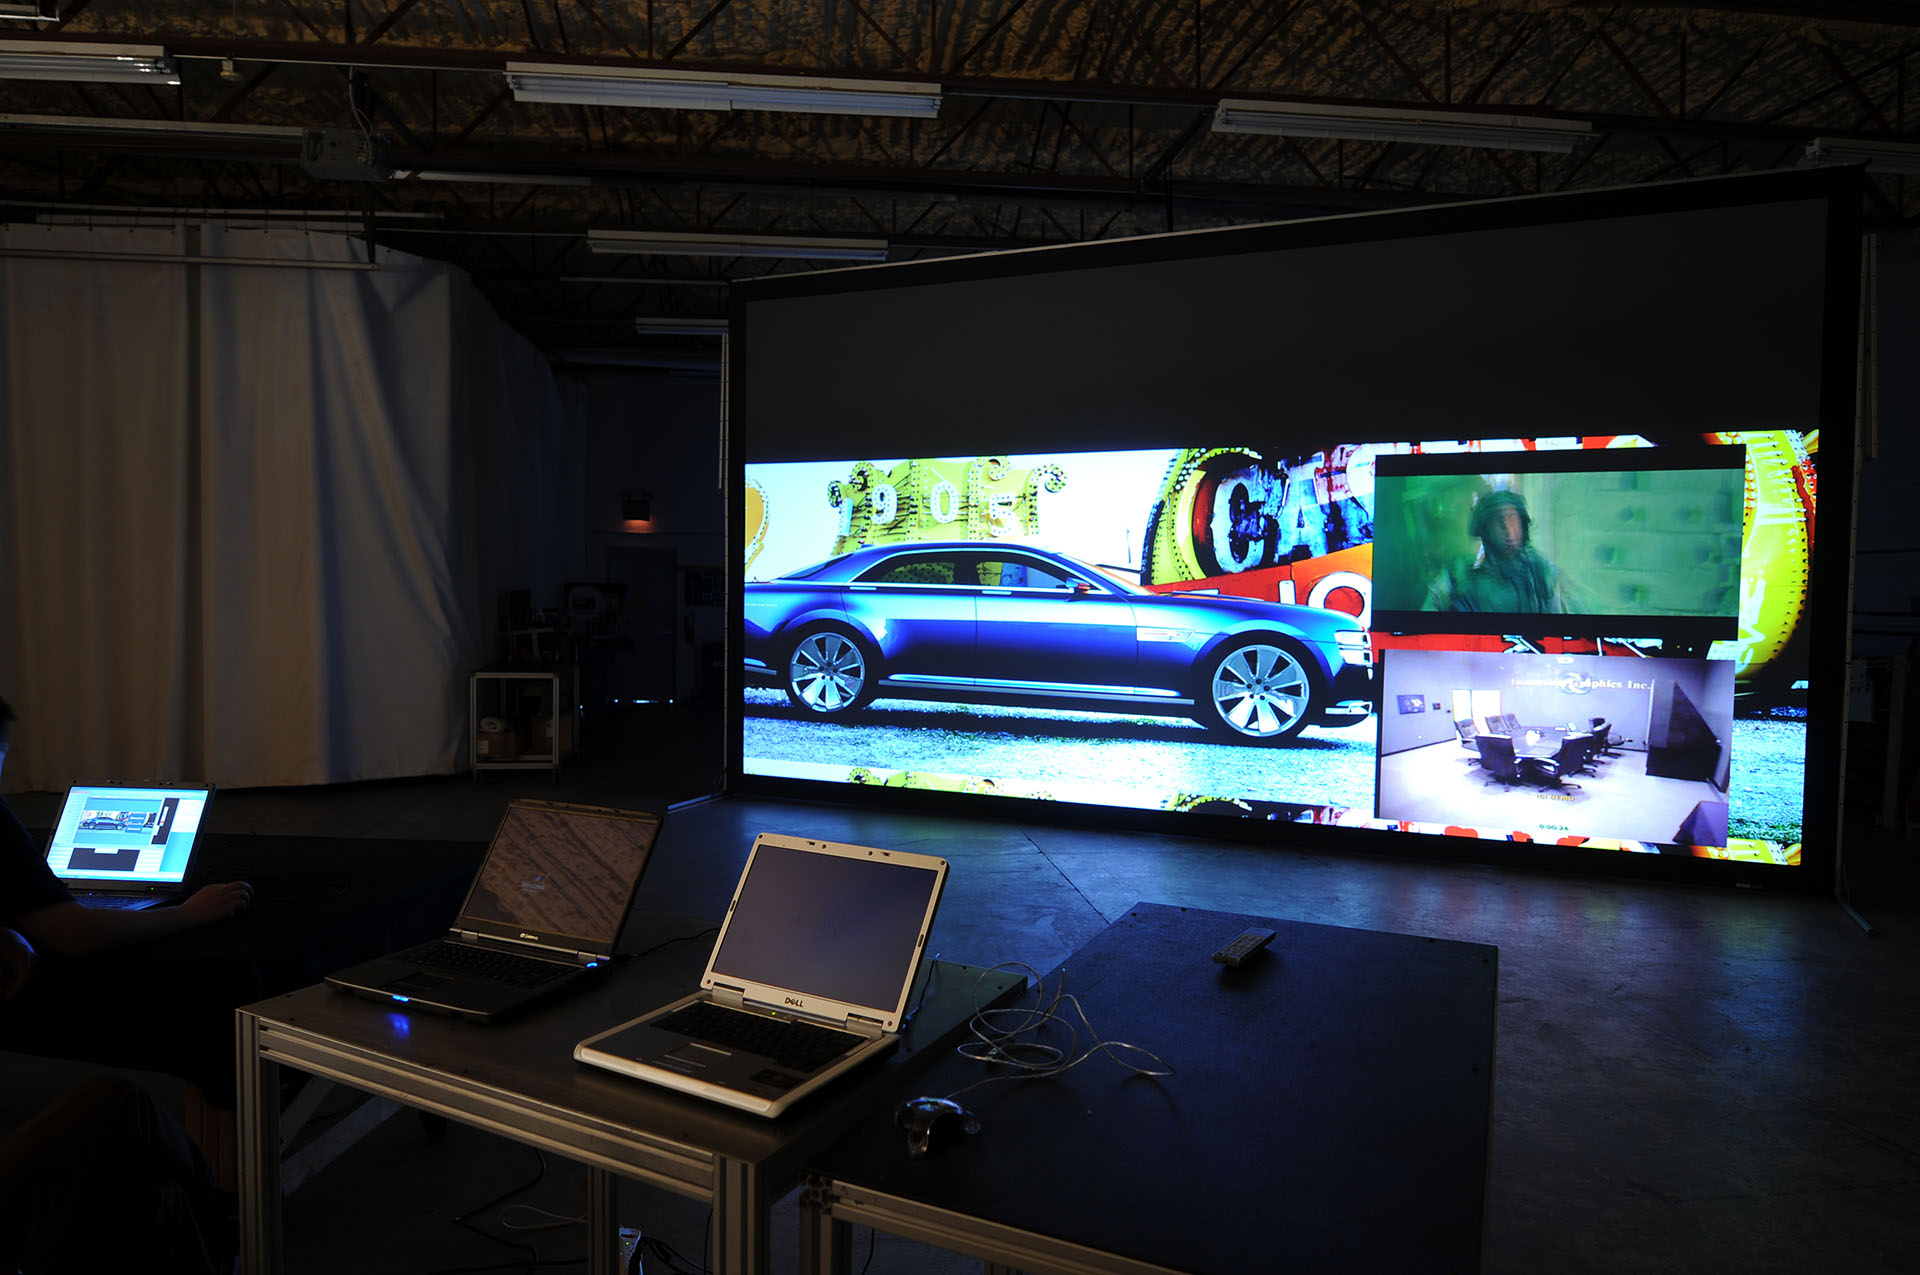 IGI 4K Forum 23' projection powerwall automotive render